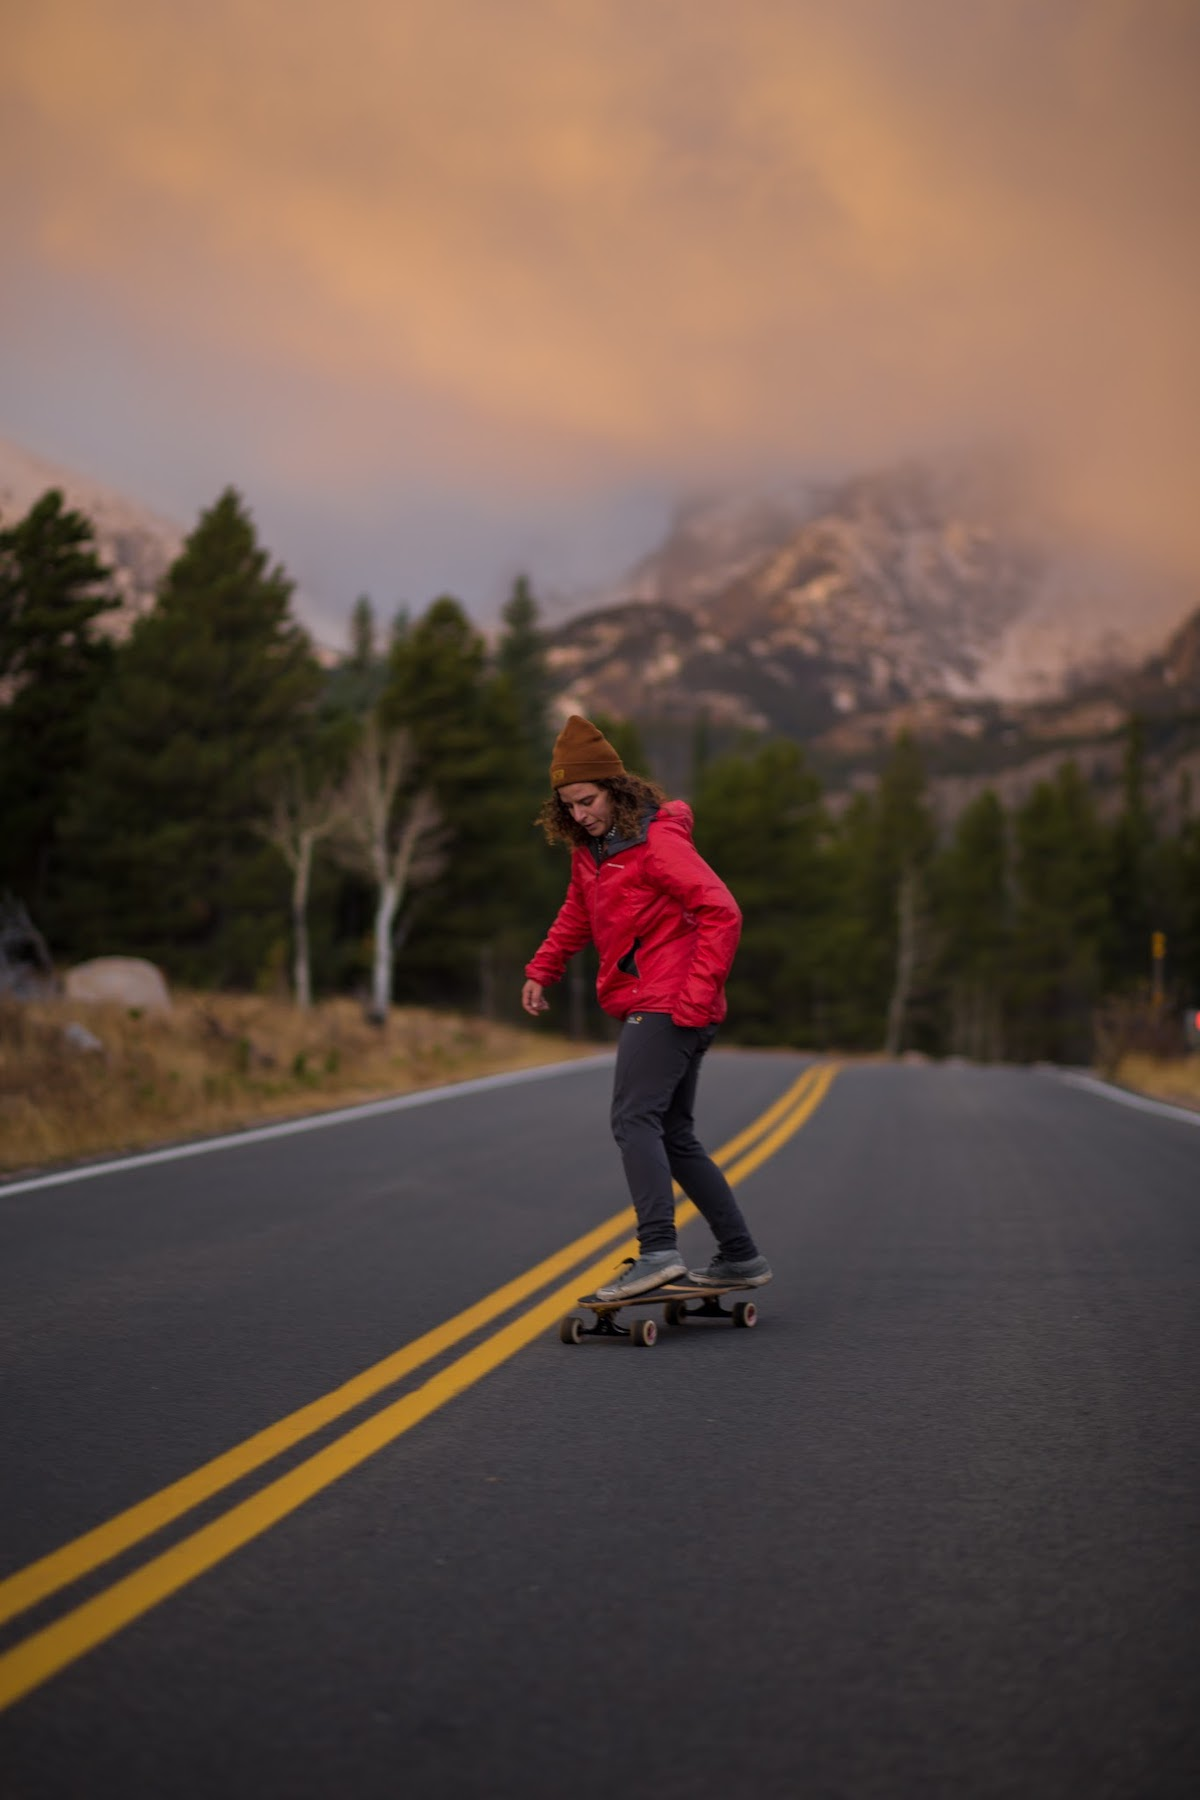 Skateboarder riding downhill on mountain road with snowy peaks in the background